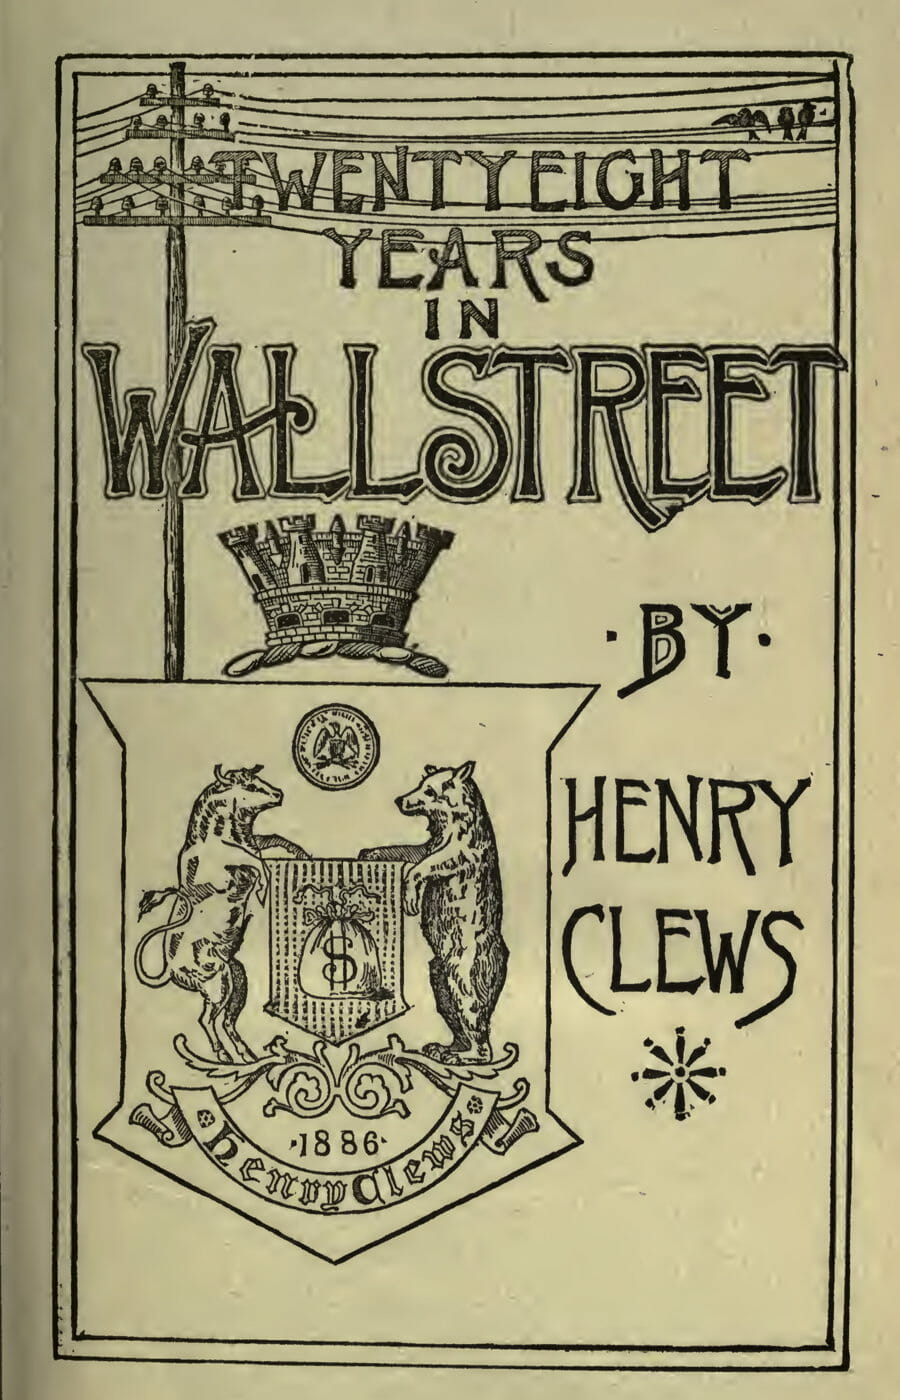 Twenty Eight Years in Wall Street by Henry Clews